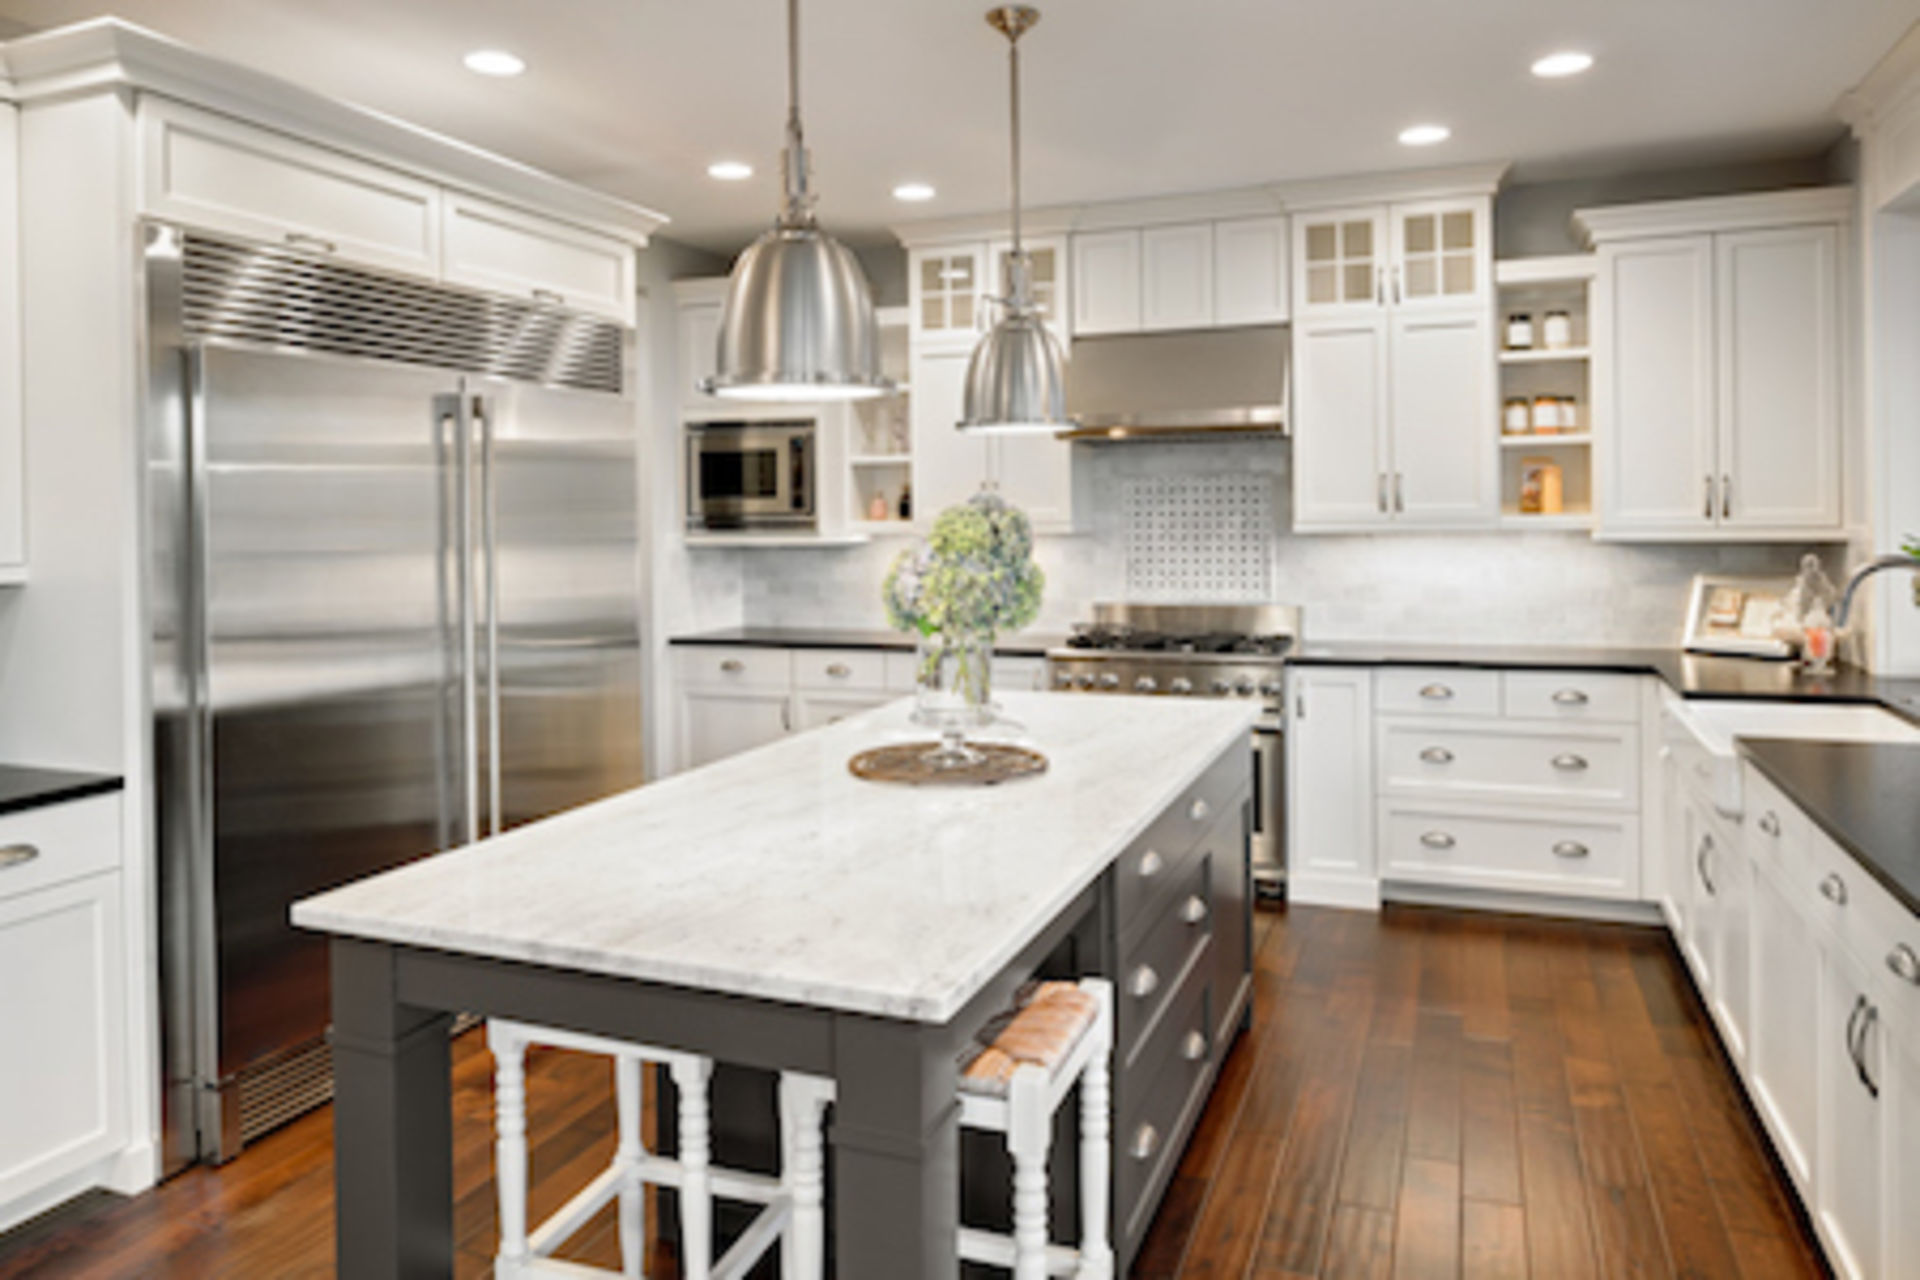 Trendy Color Choices for Your Kitchen Remodel